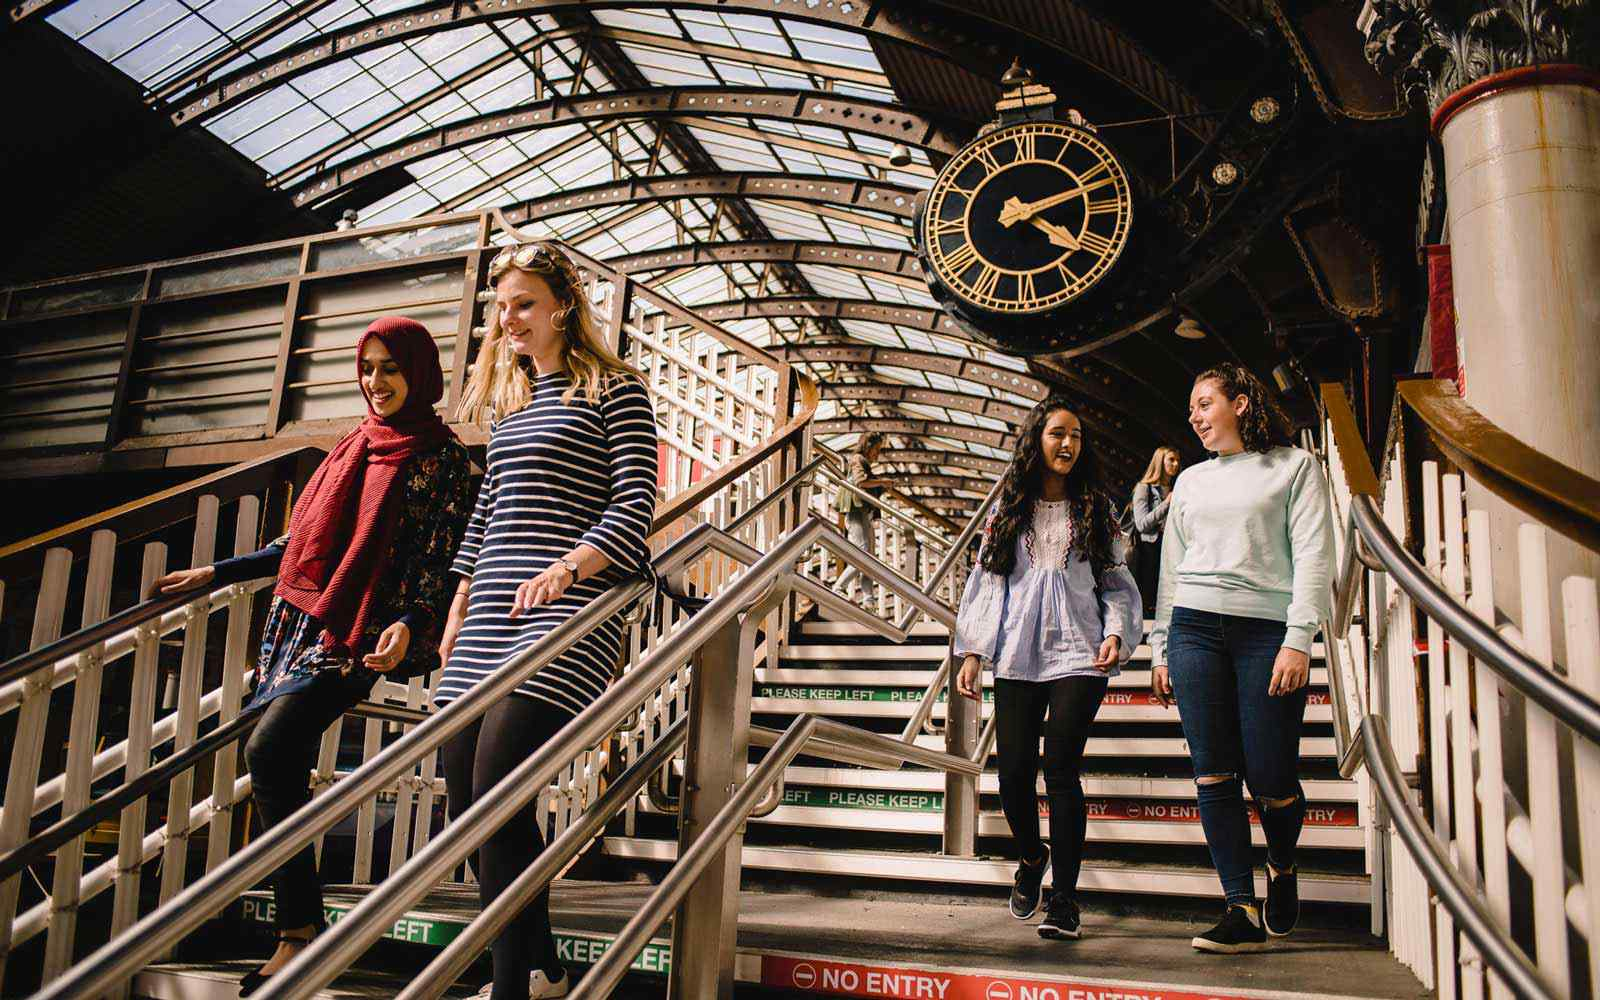 Four students chat while walking down steps at York railway station.